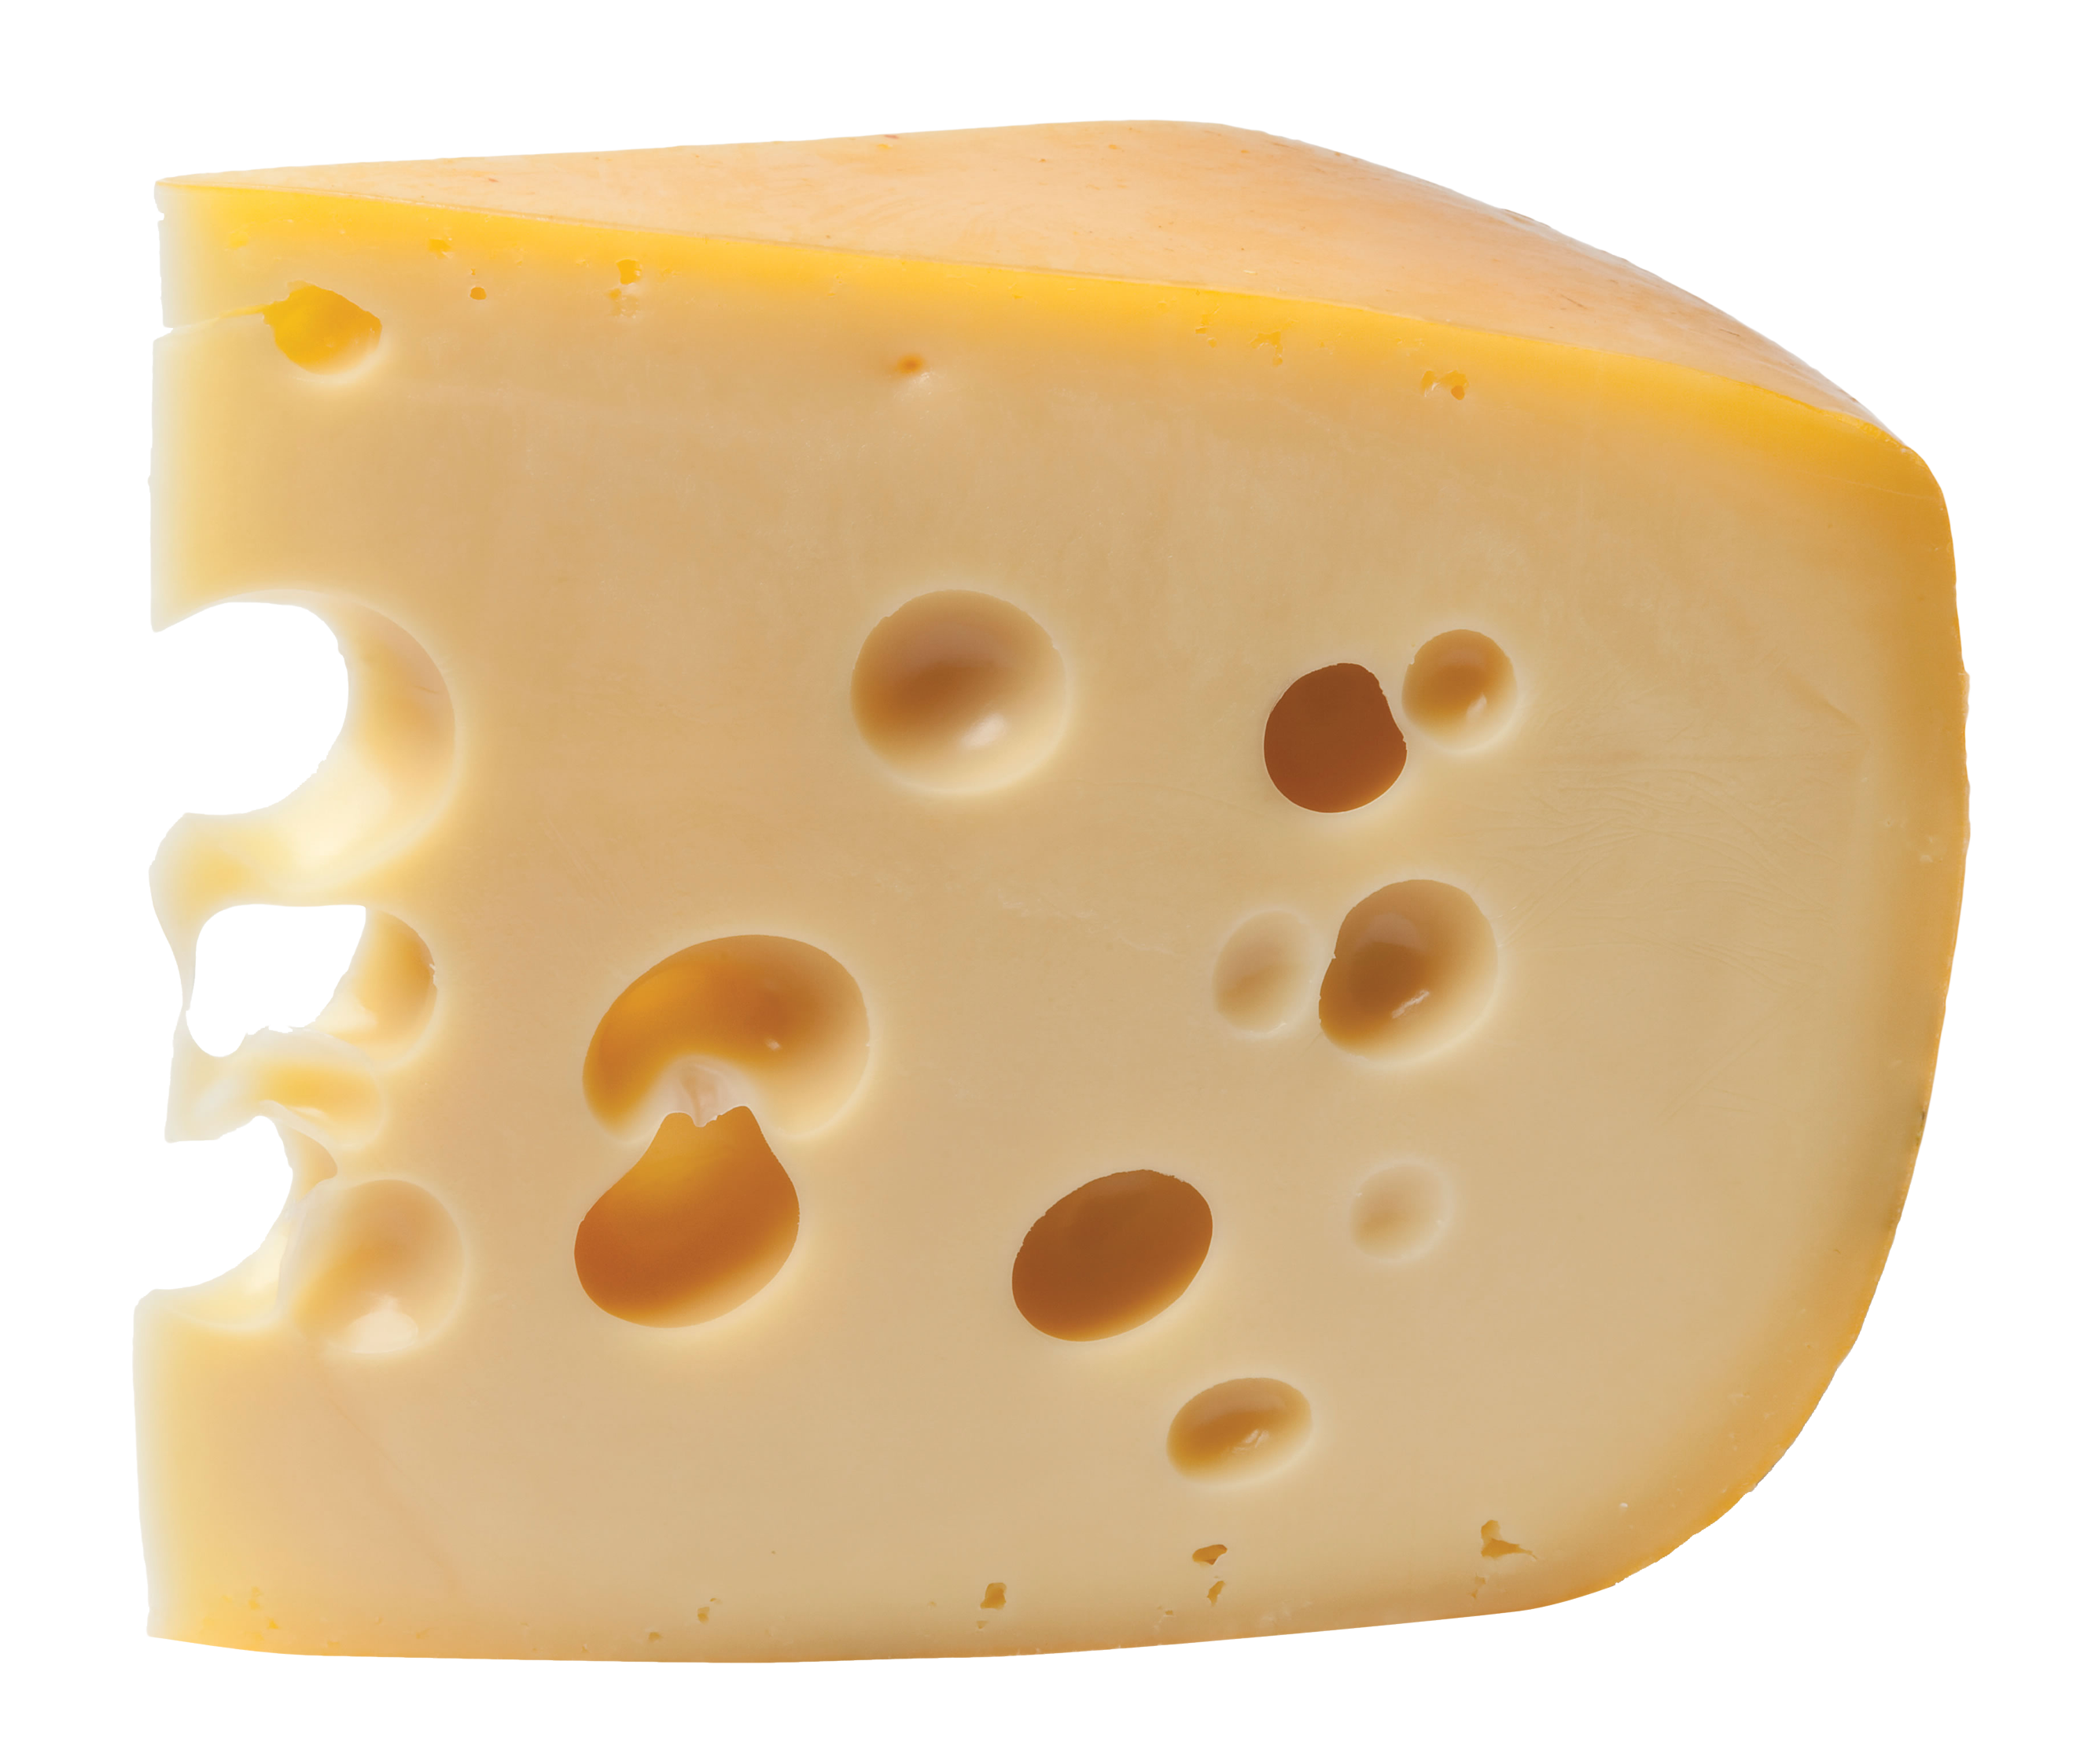 Cheese Picture Transparent Background image #48392